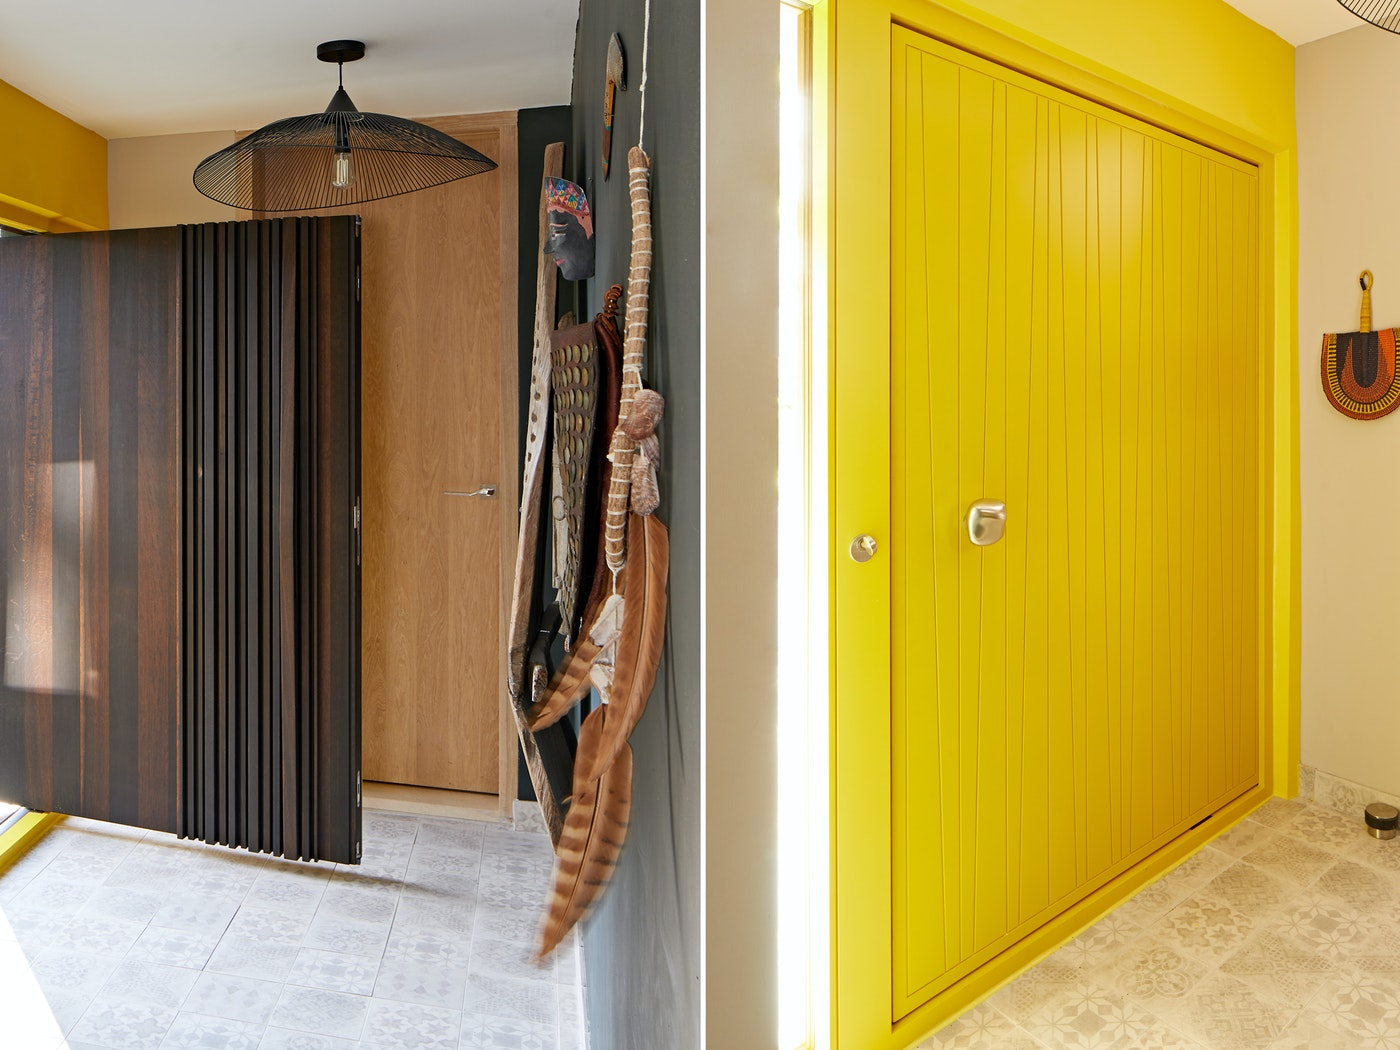 The inside features another standout style statement - our Milano V design in bold RAL-painted yellow